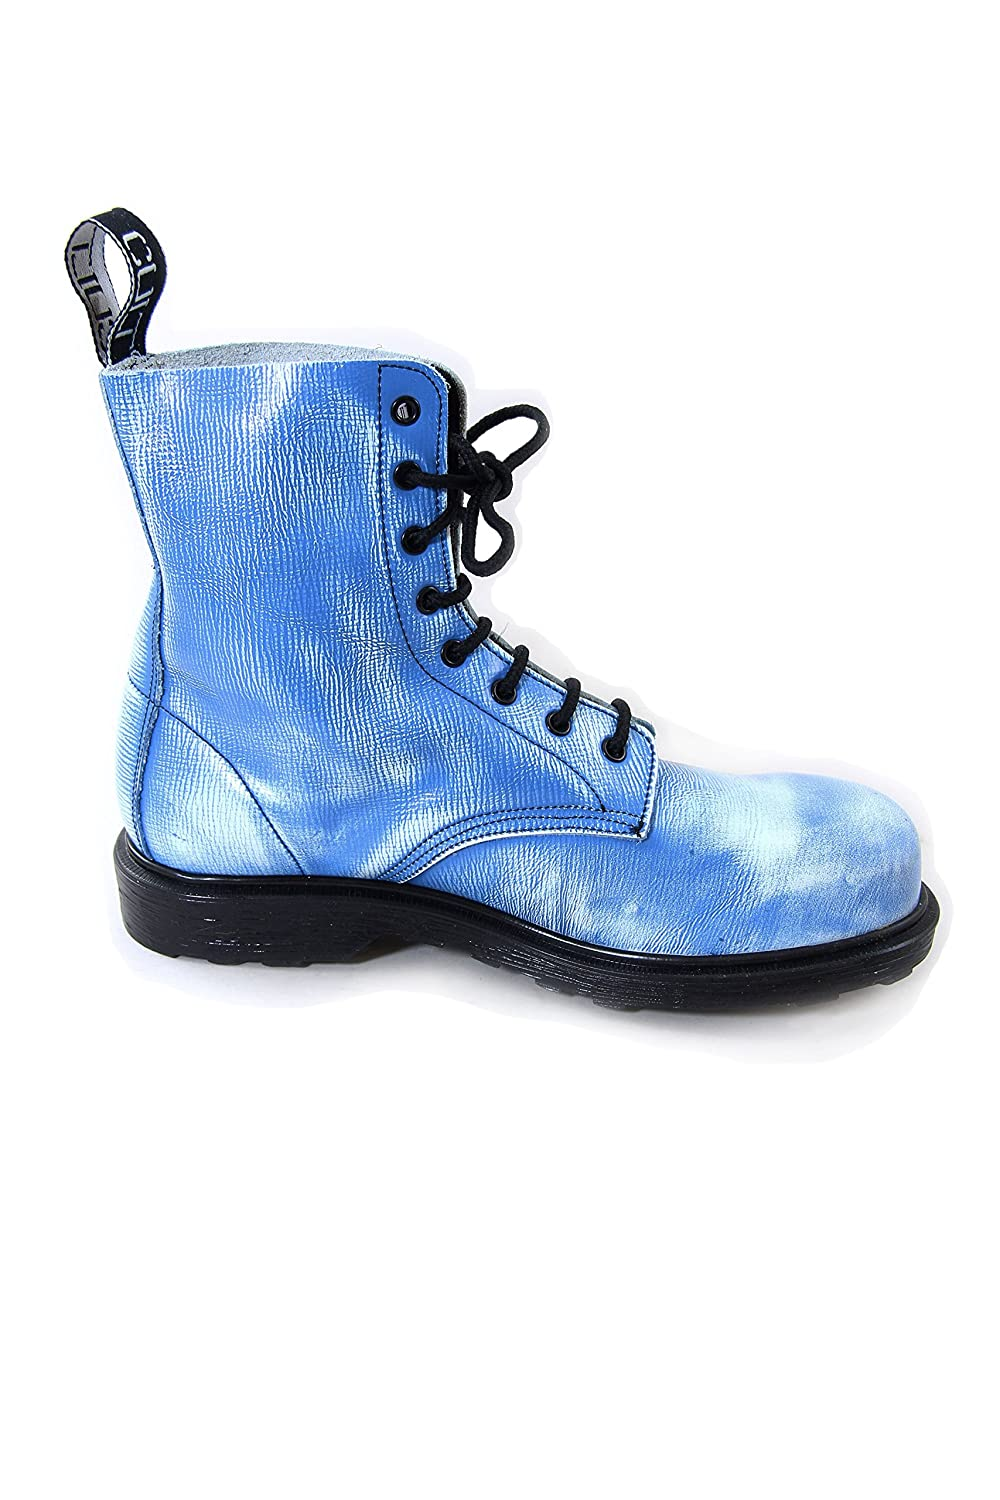 Cult Bolt Strike Vintage Leather Boots With Steel Toe Blue and White (38  EU, Blue): Amazon.co.uk: Shoes & Bags